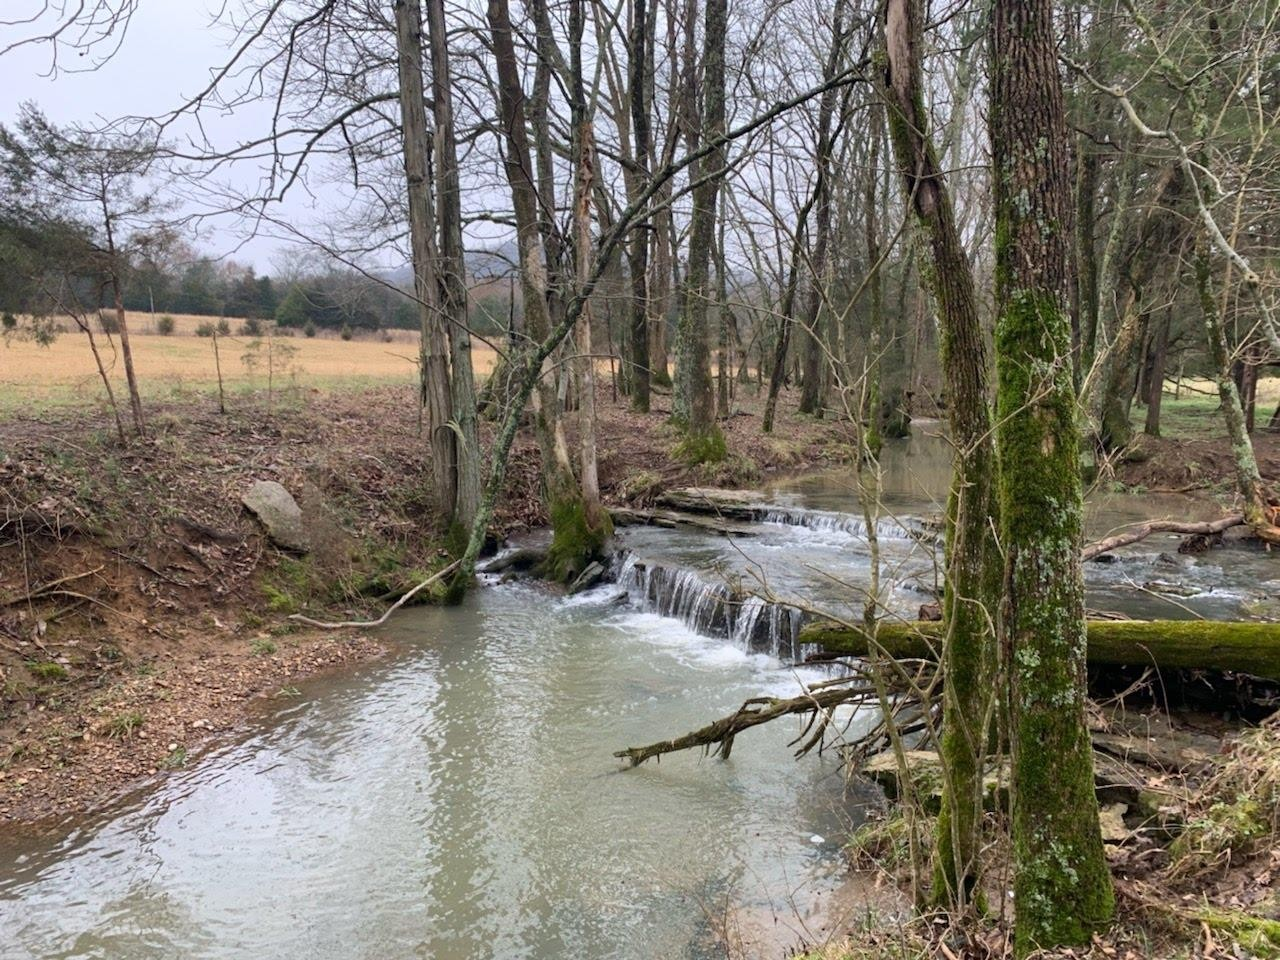 0 William Lane, Readyville, TN 37149 - Readyville, TN real estate listing